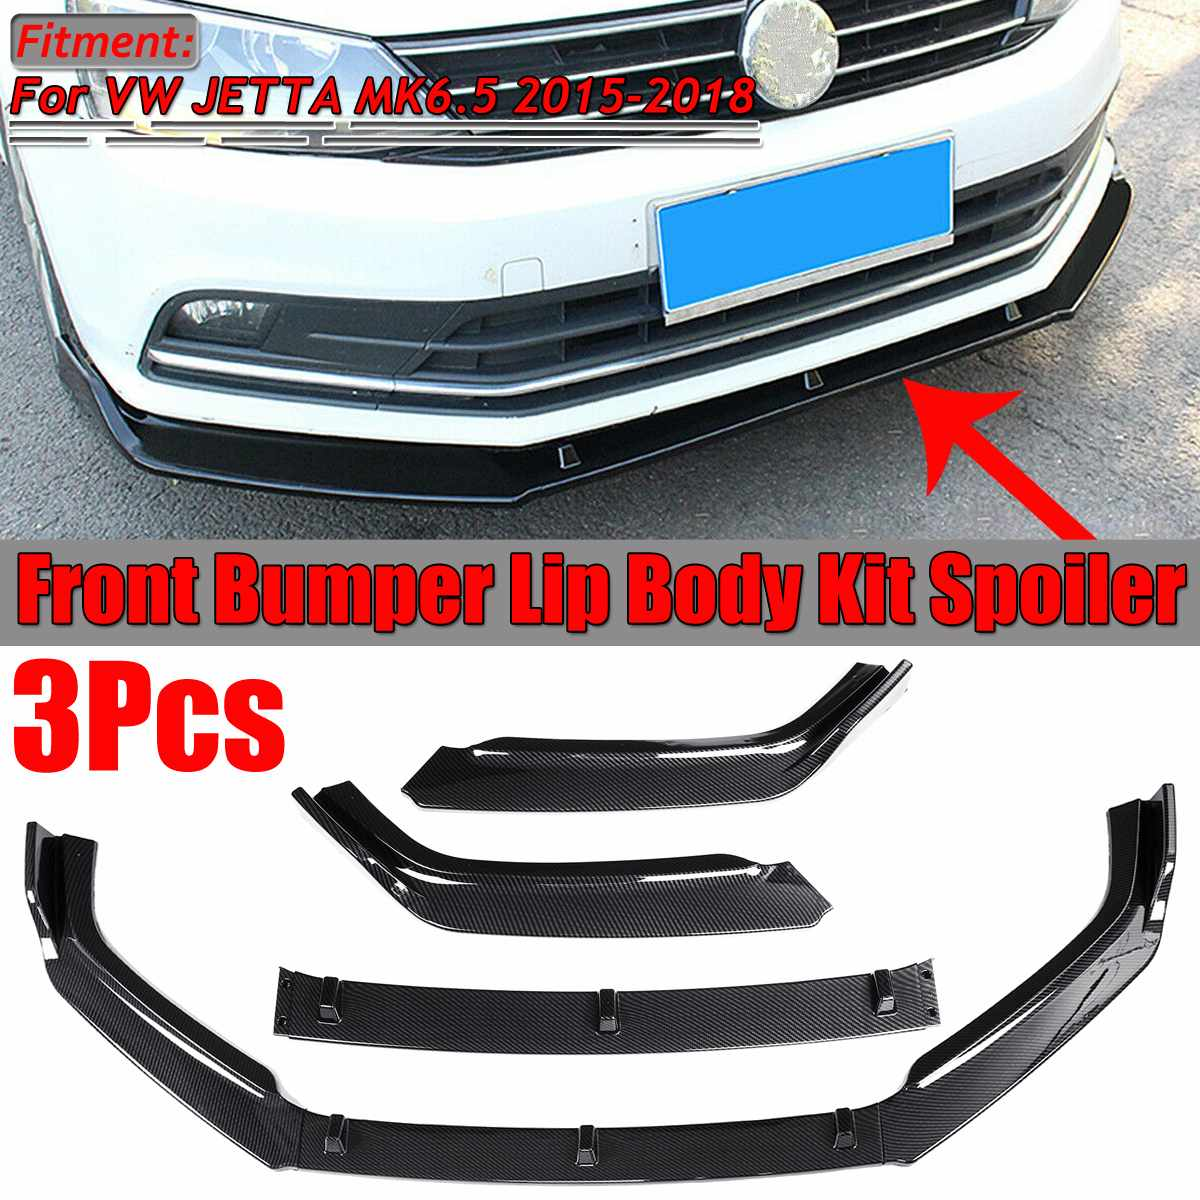 3Pcs Car Front Bumper Lip Splitter Lip Chin Bumper Diffuser Spoiler Splitters Body Kit For VW JETTA MK6.5 2015 2016 2017 2018